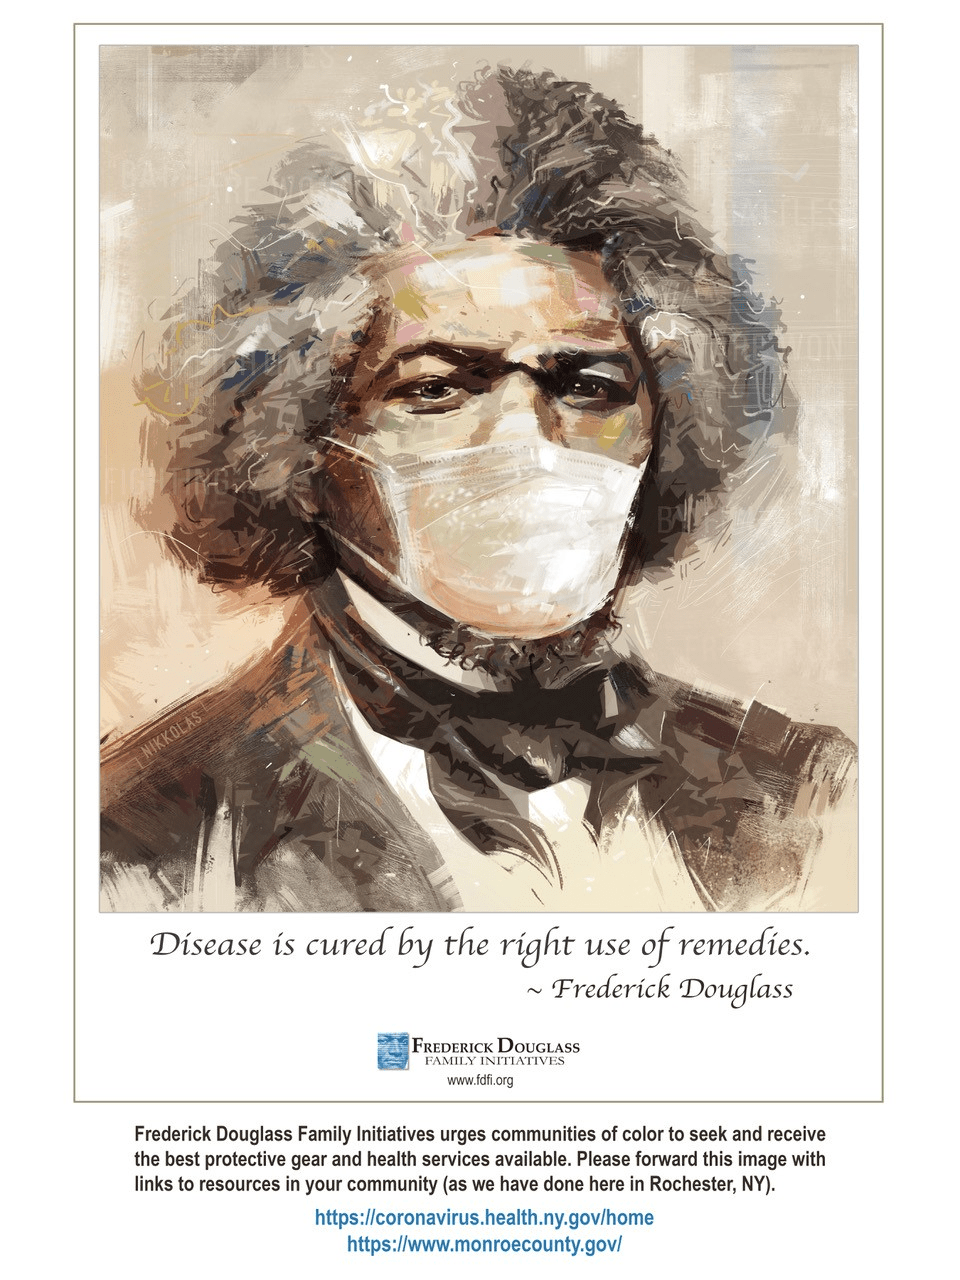 Artistic Likeness of Frederick Douglass Adds Ancestral Wit to COVID Awareness